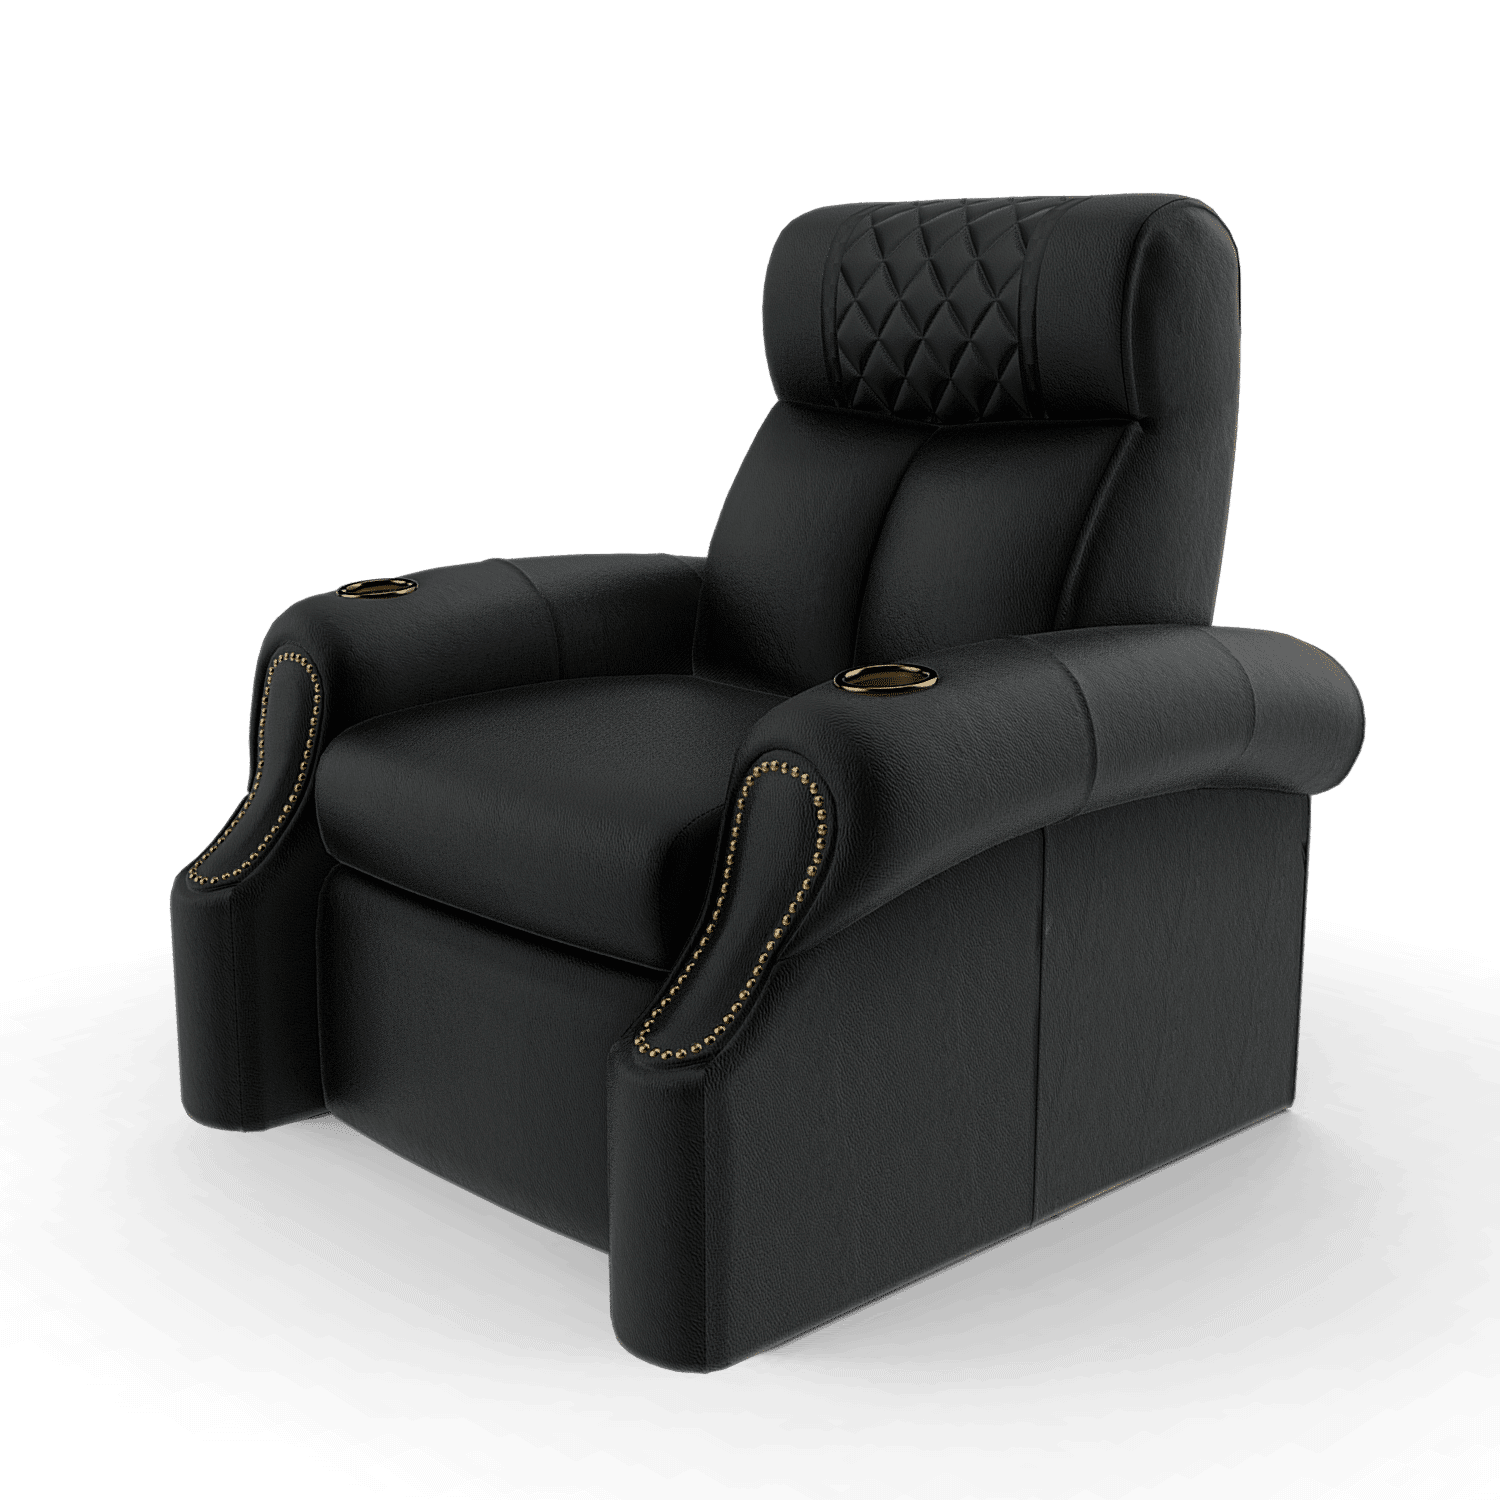 home_theater_chairs black